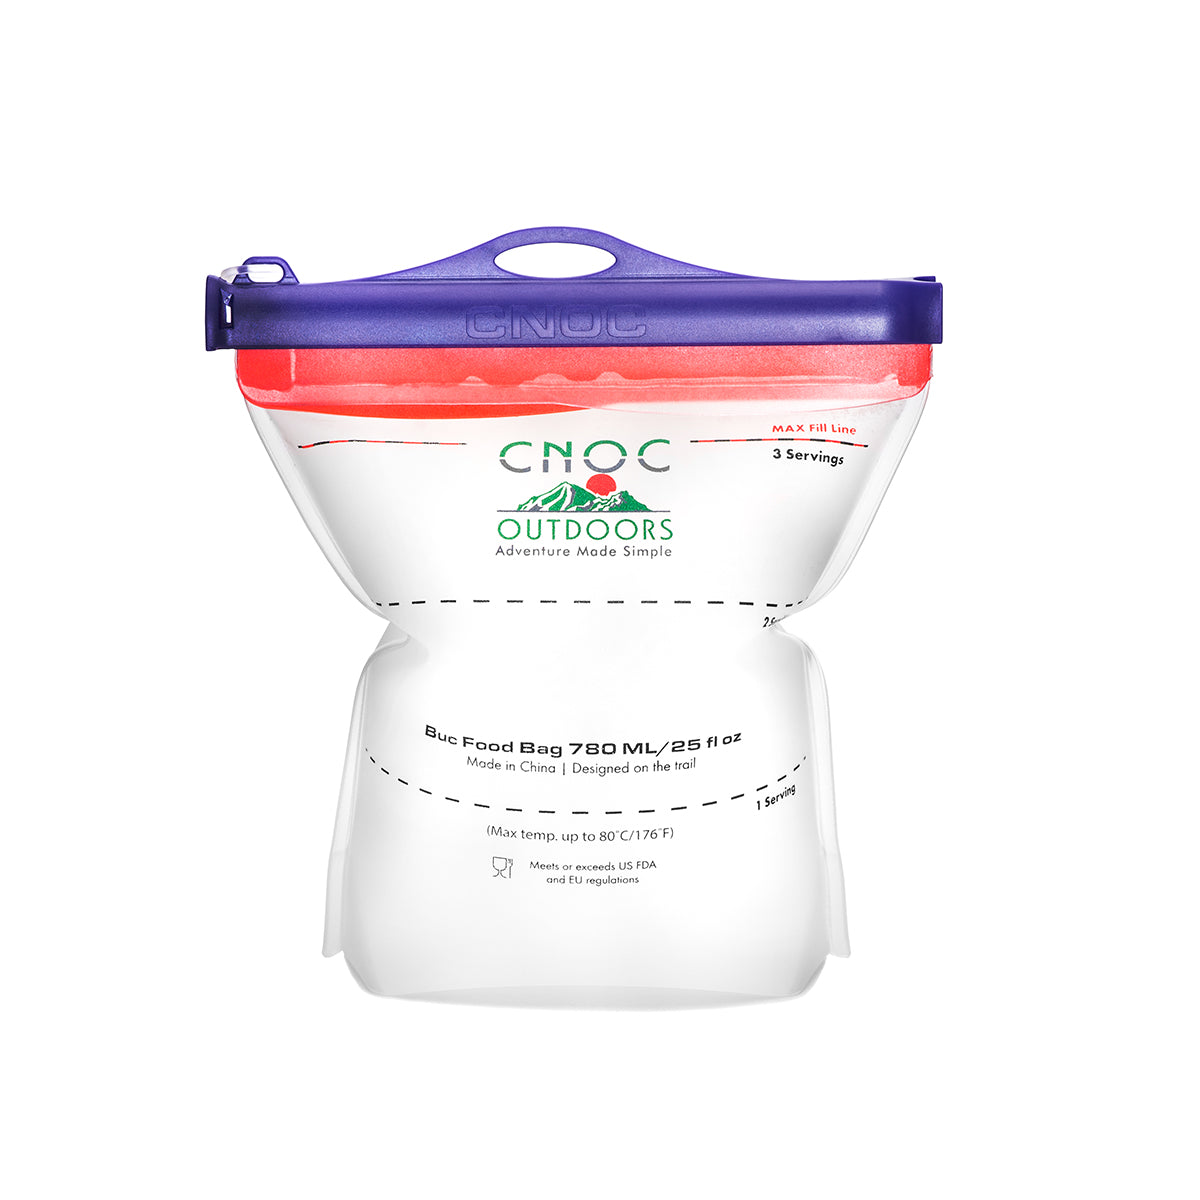 CNOC Buc Food Bag